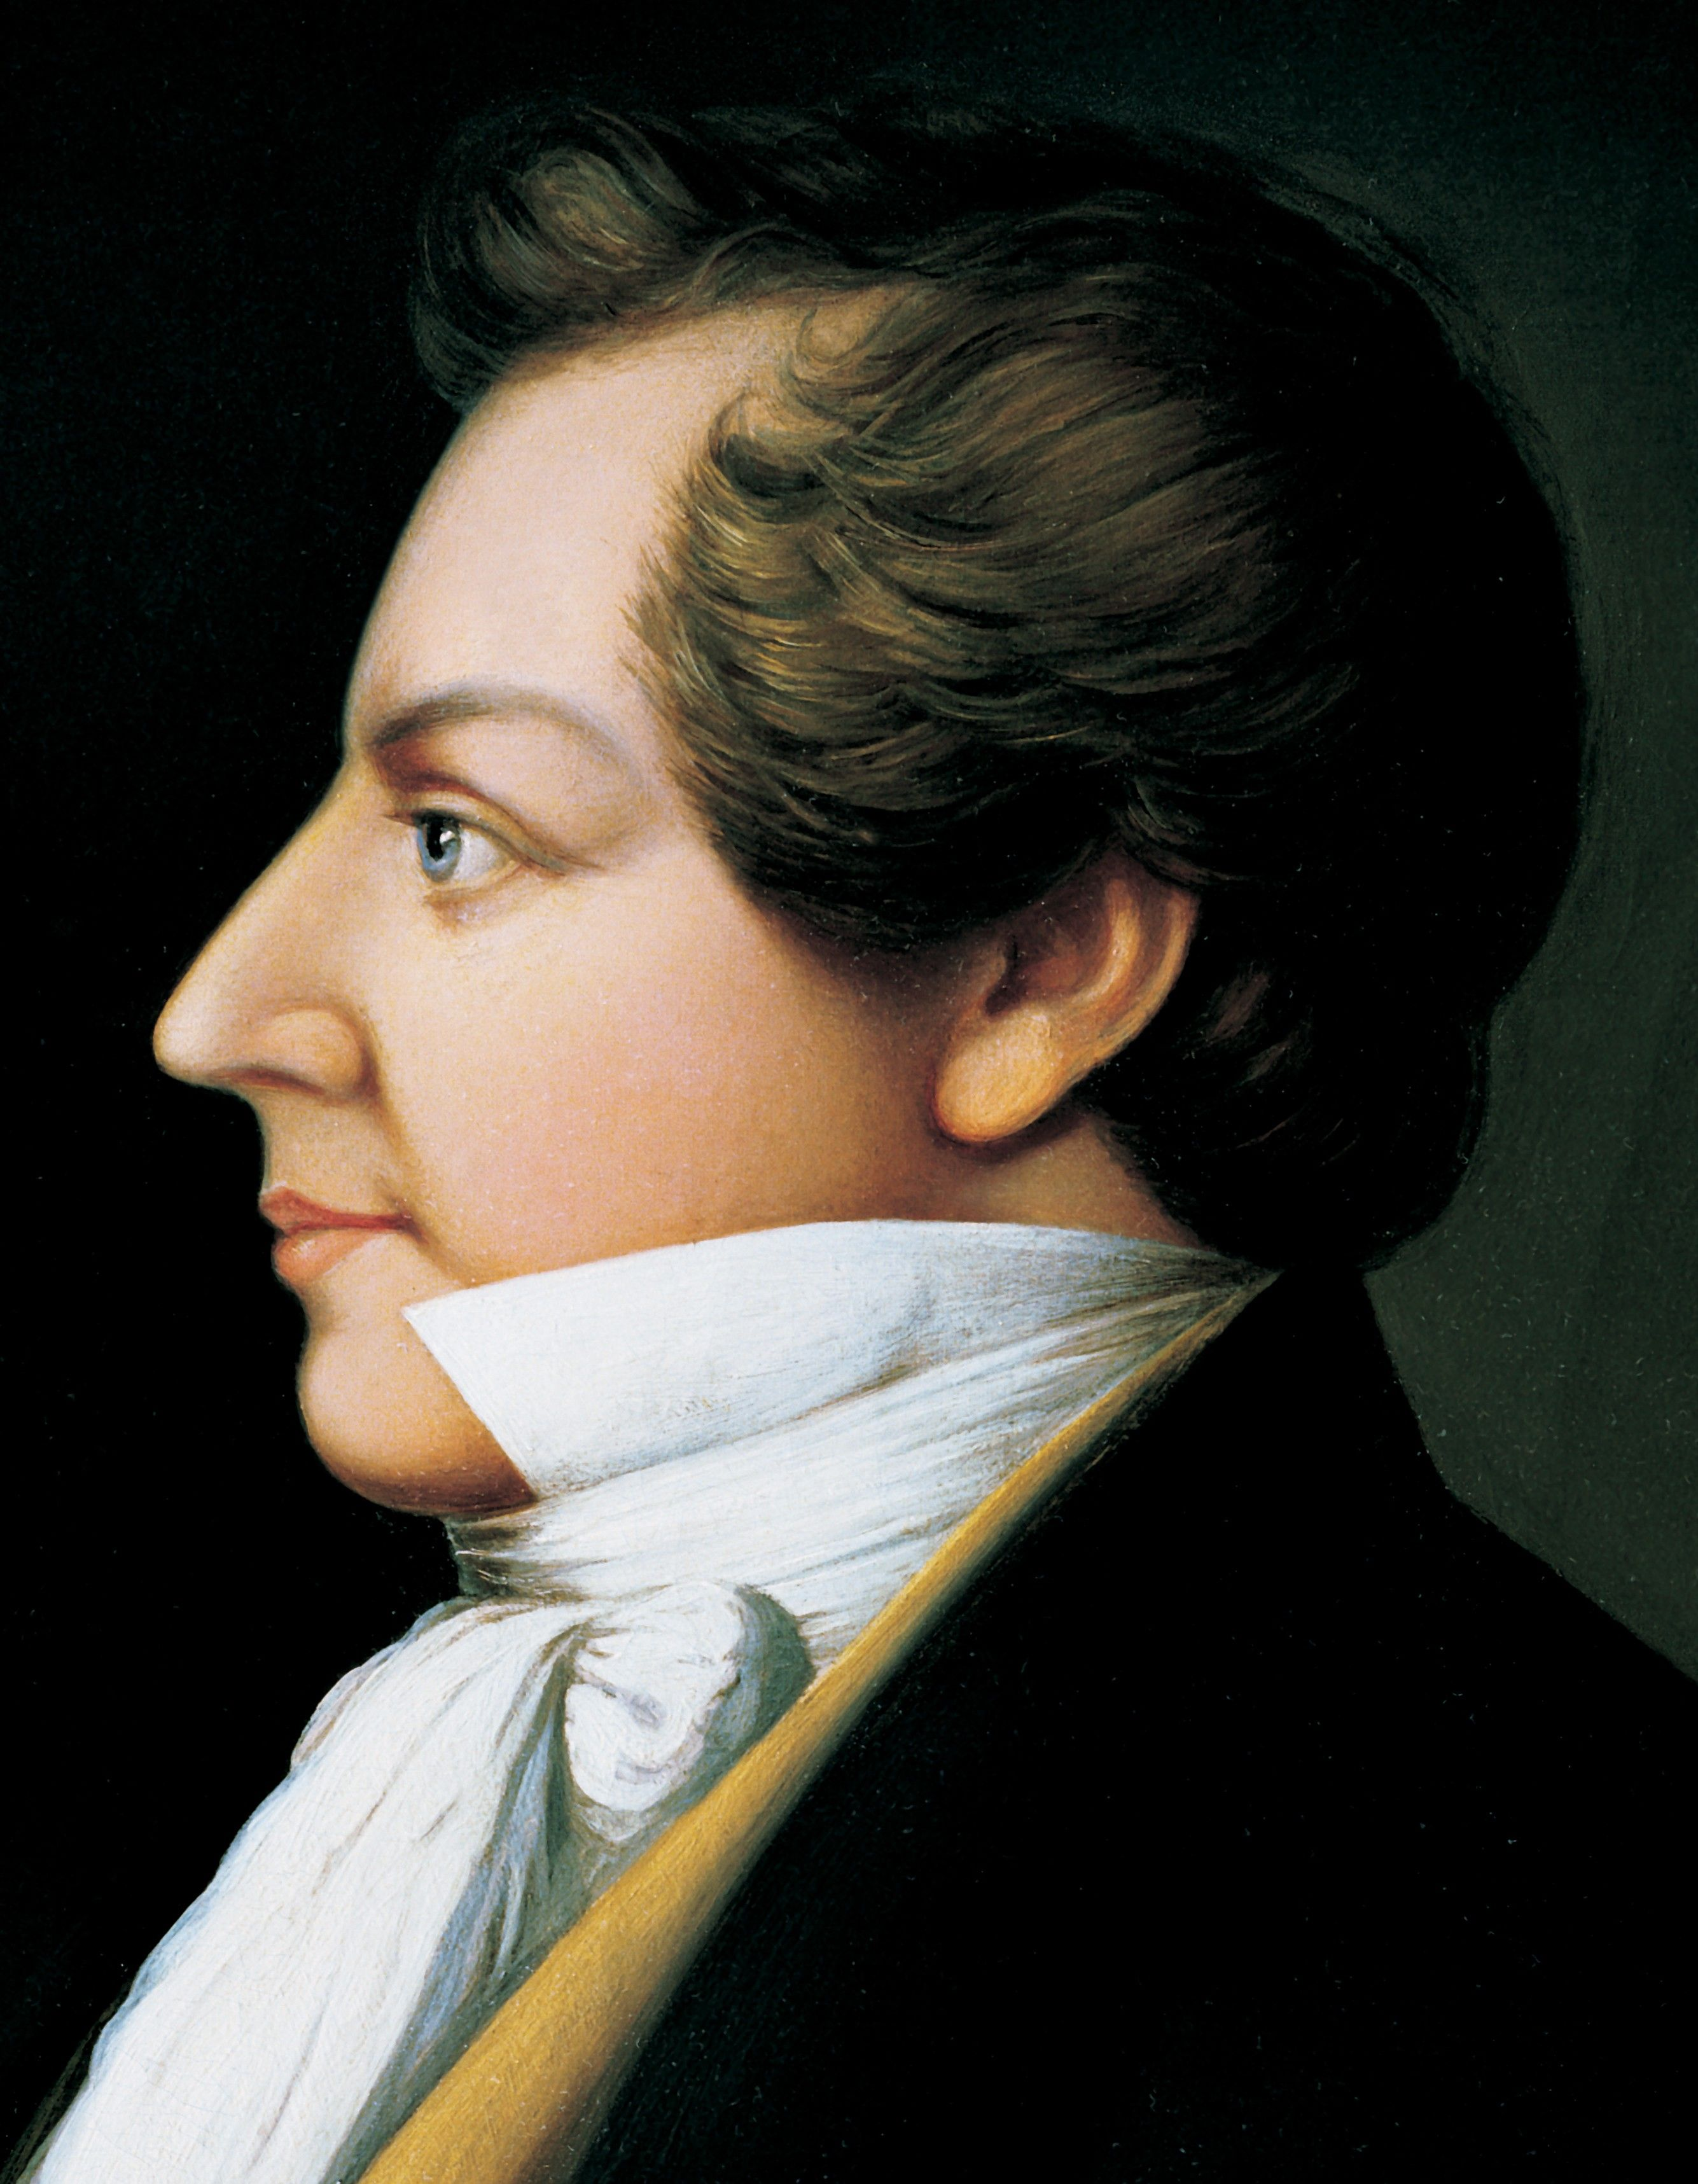 A portrait of Joseph Smith Jr., who was the first President of The Church of Jesus Christ of Latter-day Saints from 1830 to 1844; painted by Danquart Anthon Weggeland.